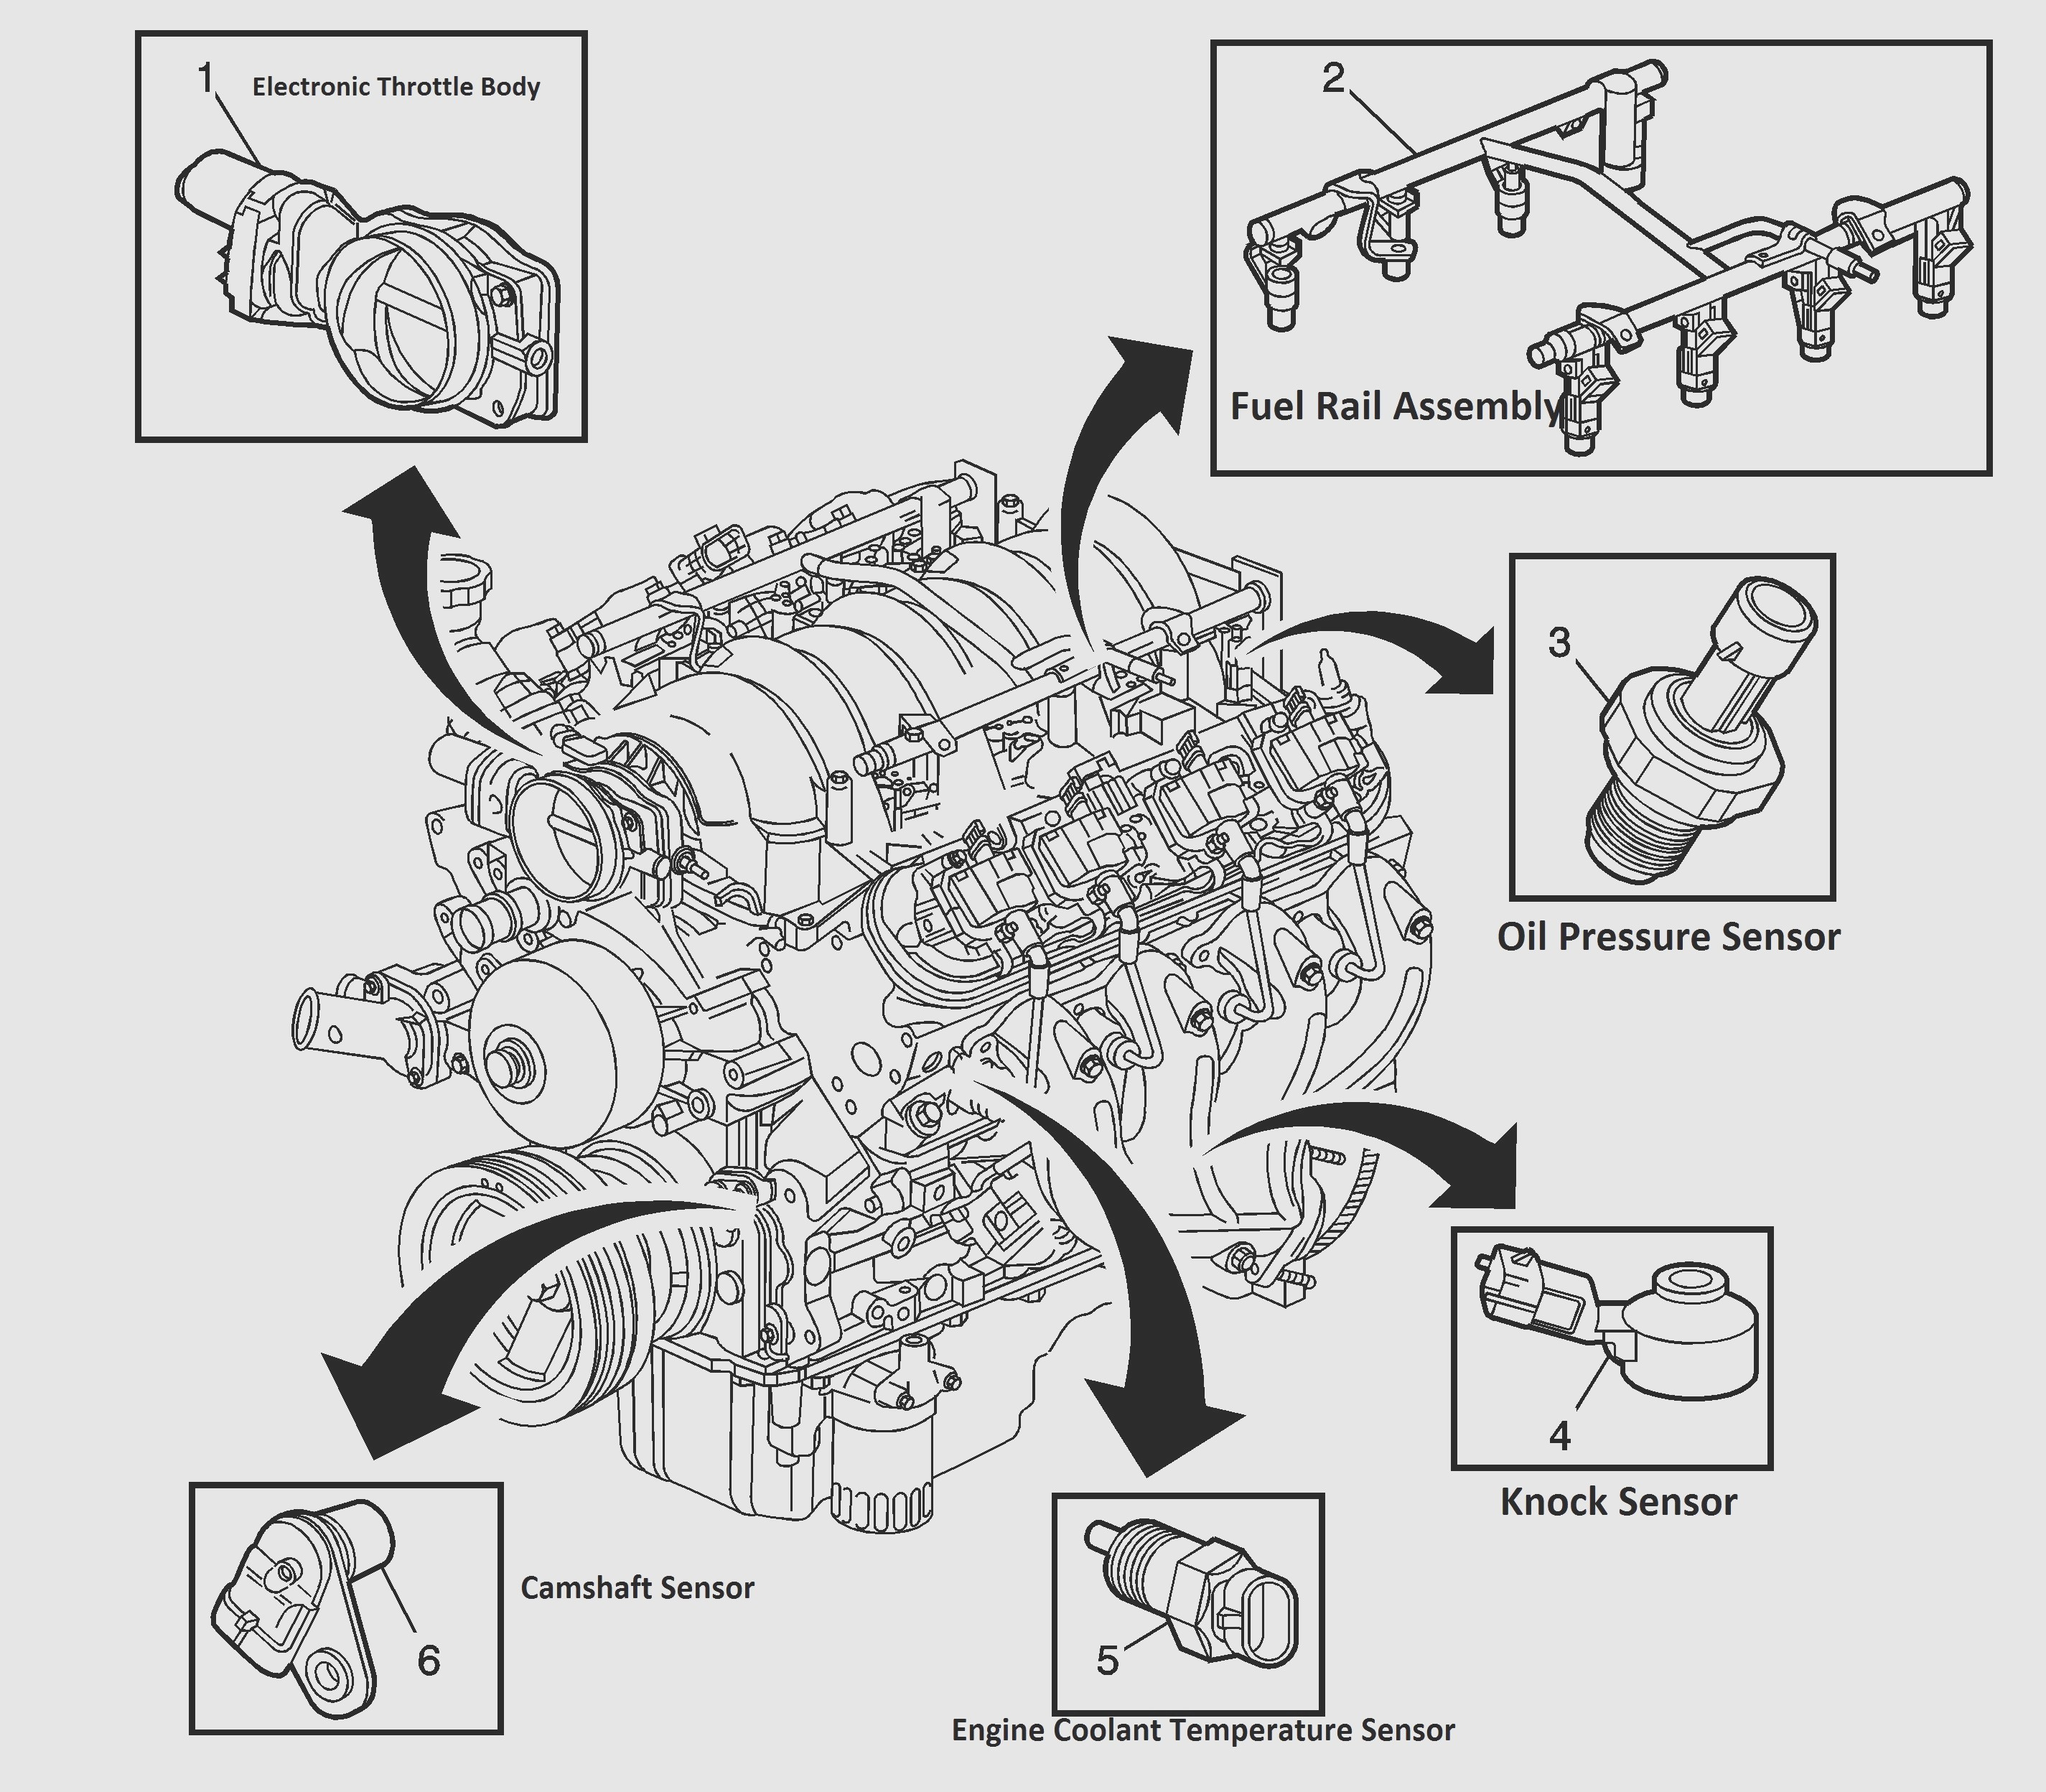 2007 Buick Lucerne Engine Diagram 2003 Century Ignition Wiring For A Great Description About Lacrosse 2009 With Fascinating Of